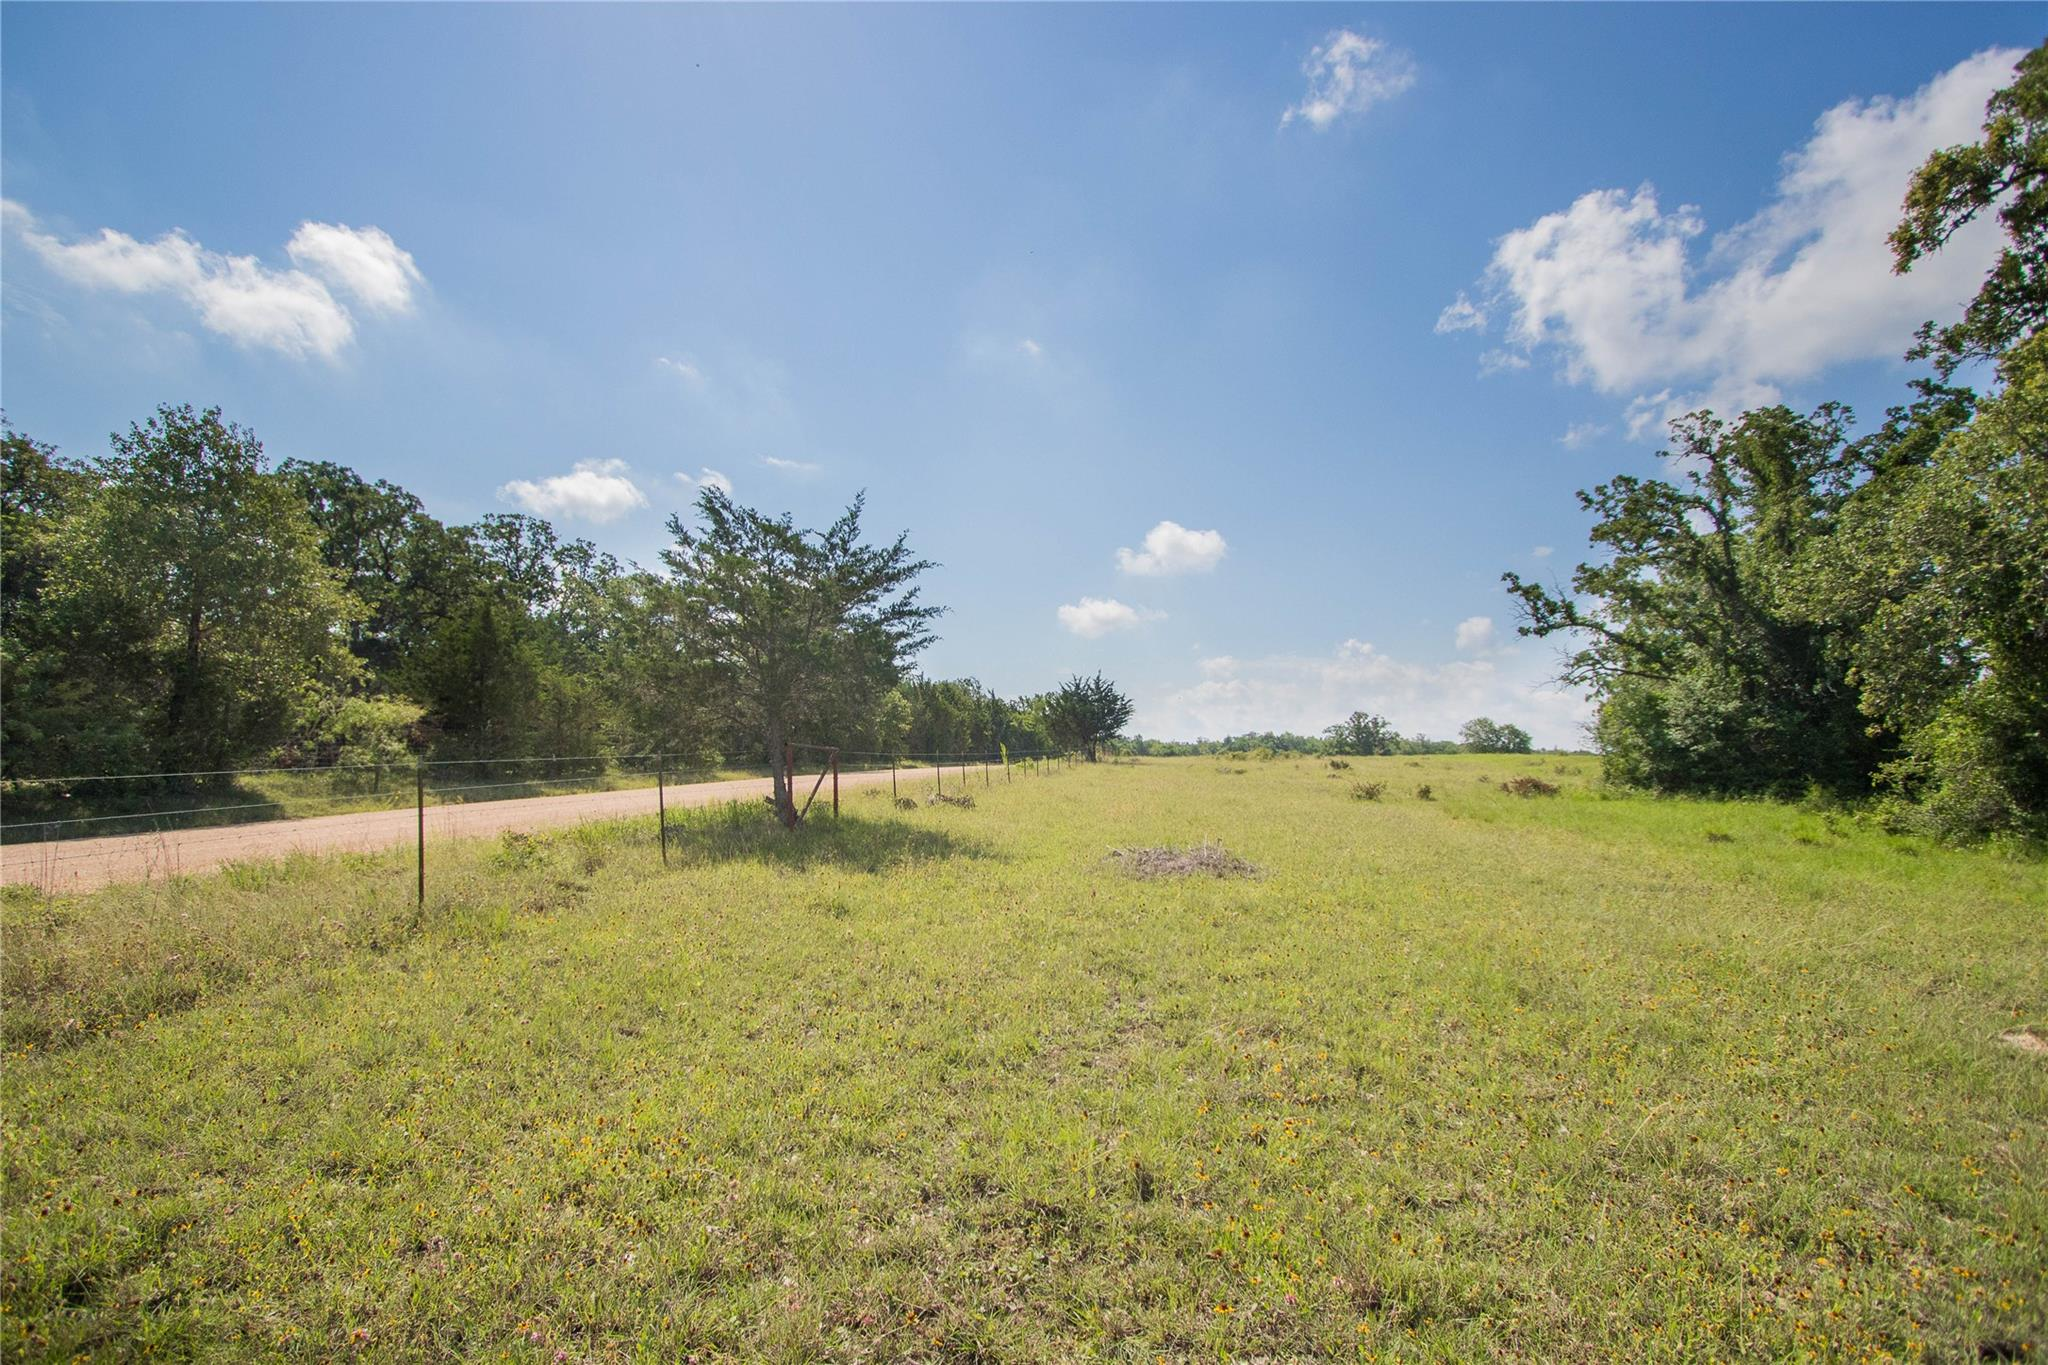 Tbd (tract 3 - 10.94 Ac) County Road 130 Property Photo